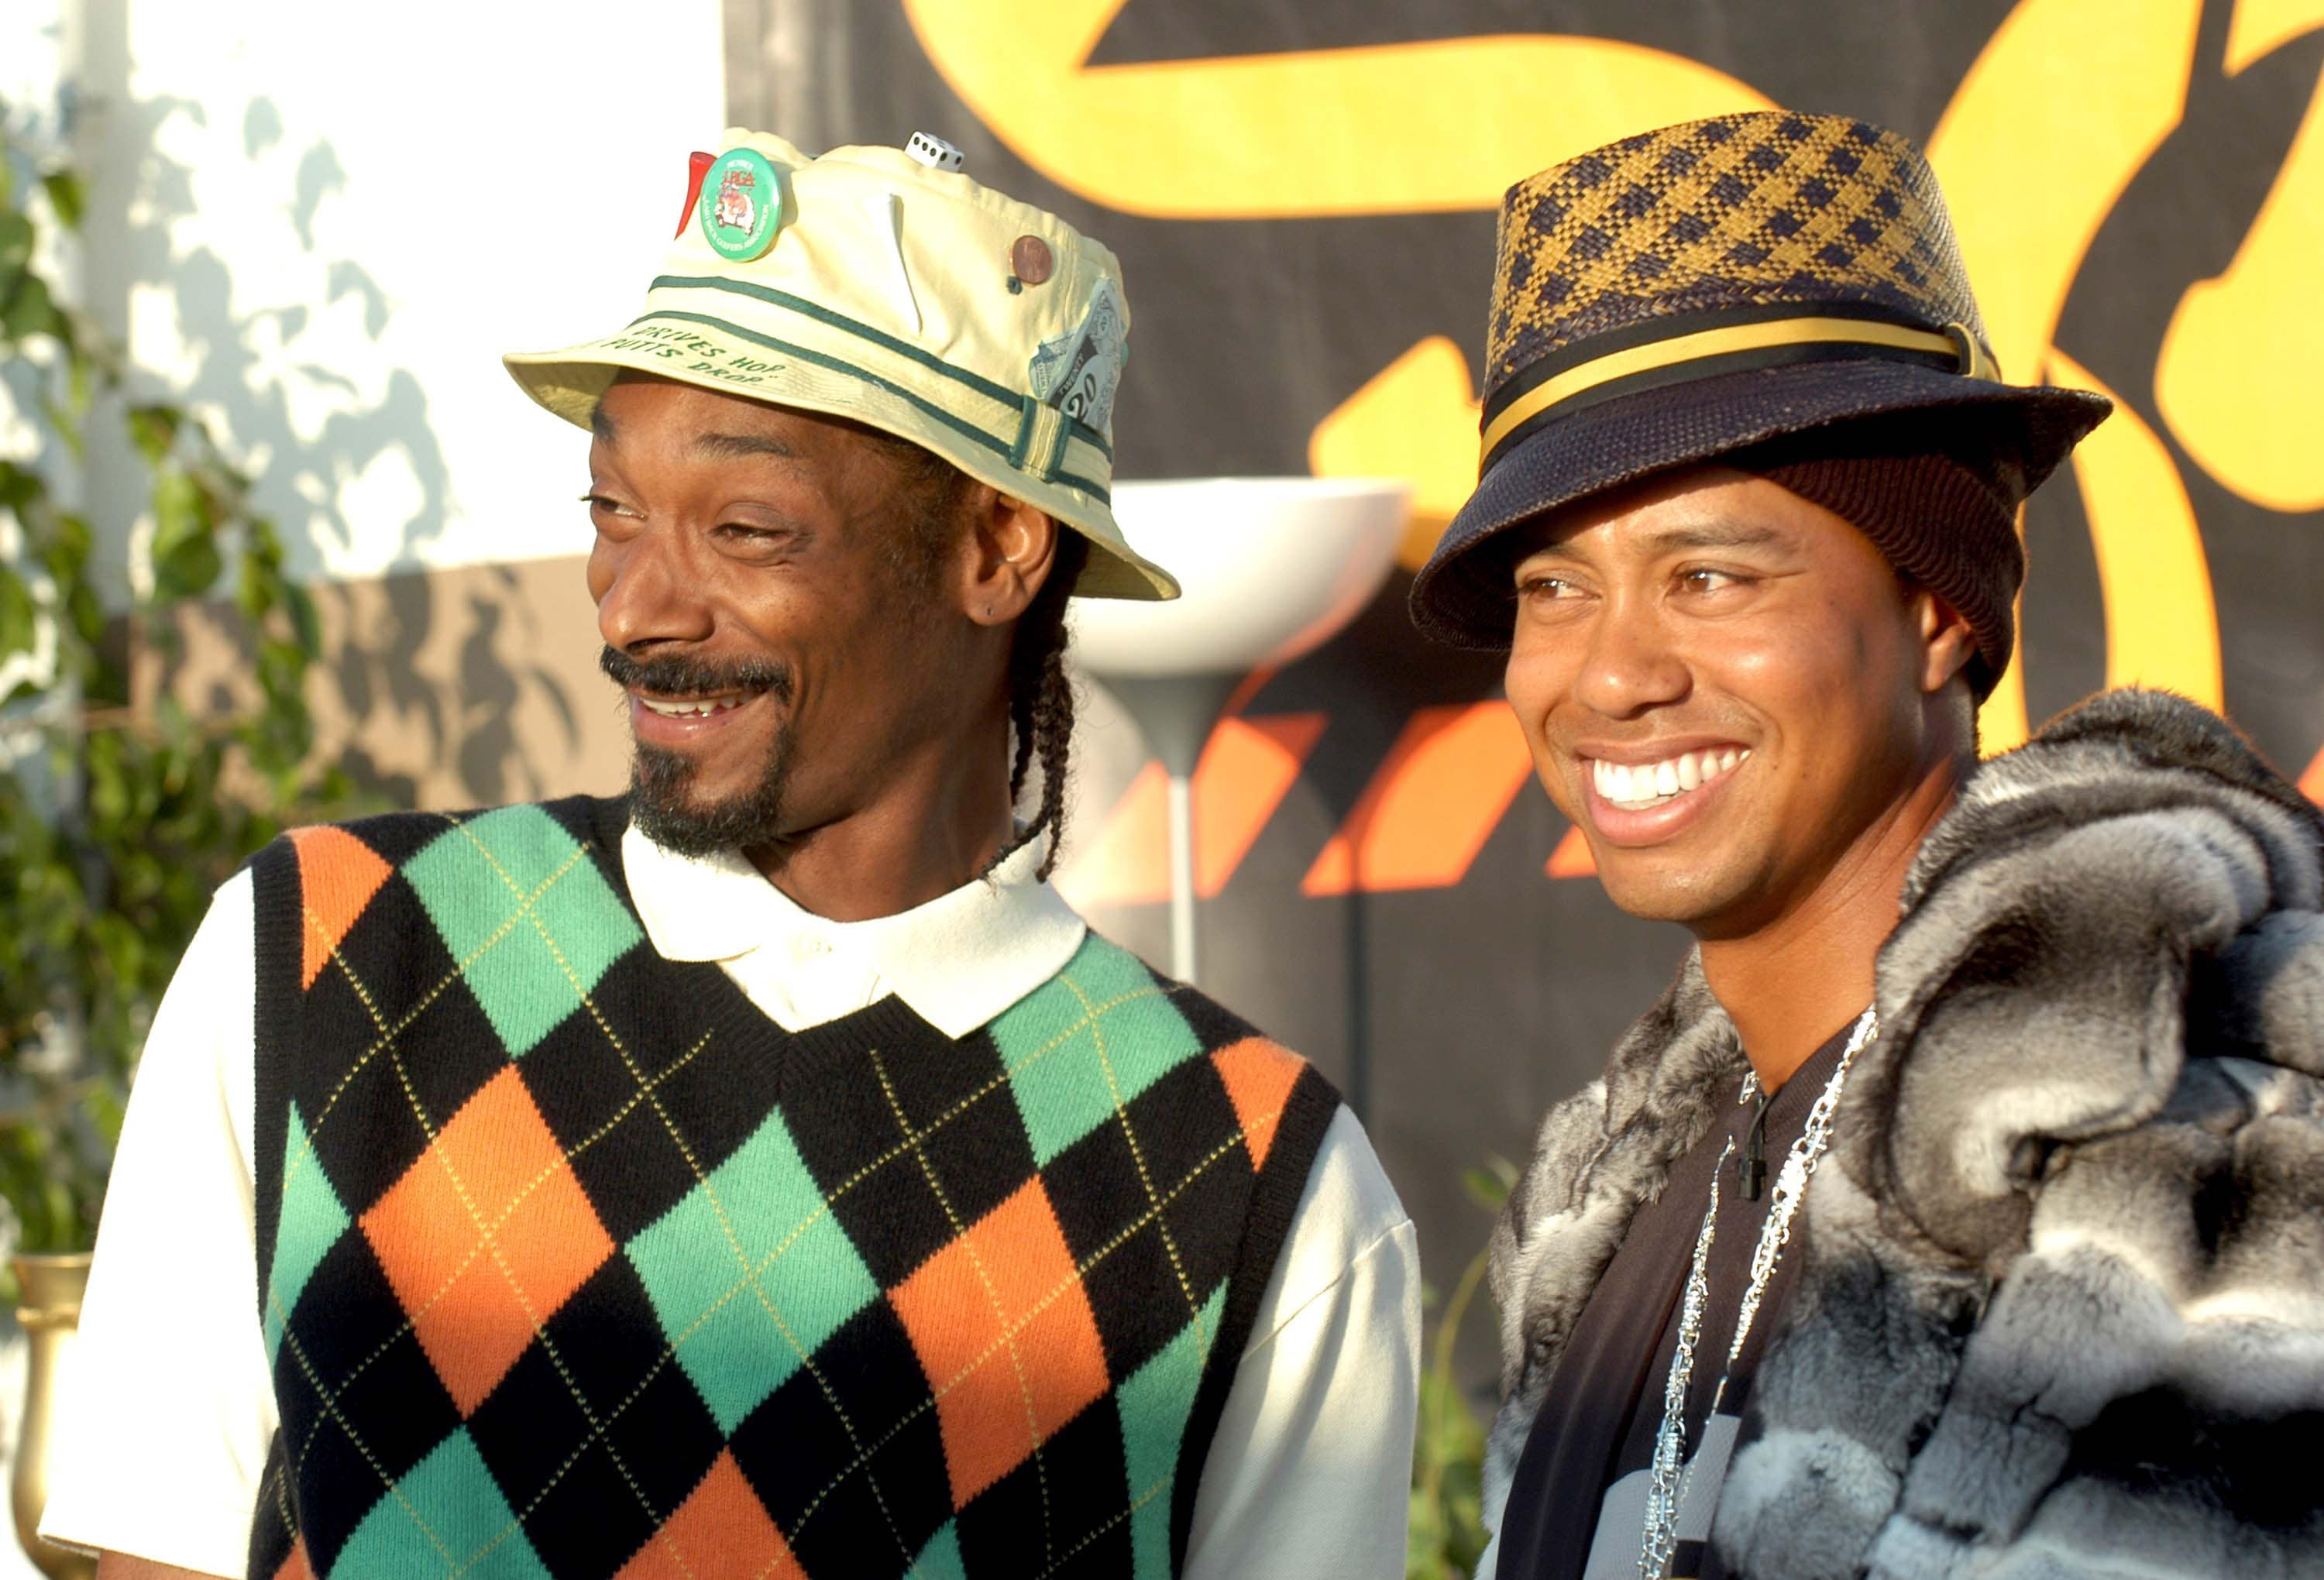 Tiger Woods and Snoop Dogg